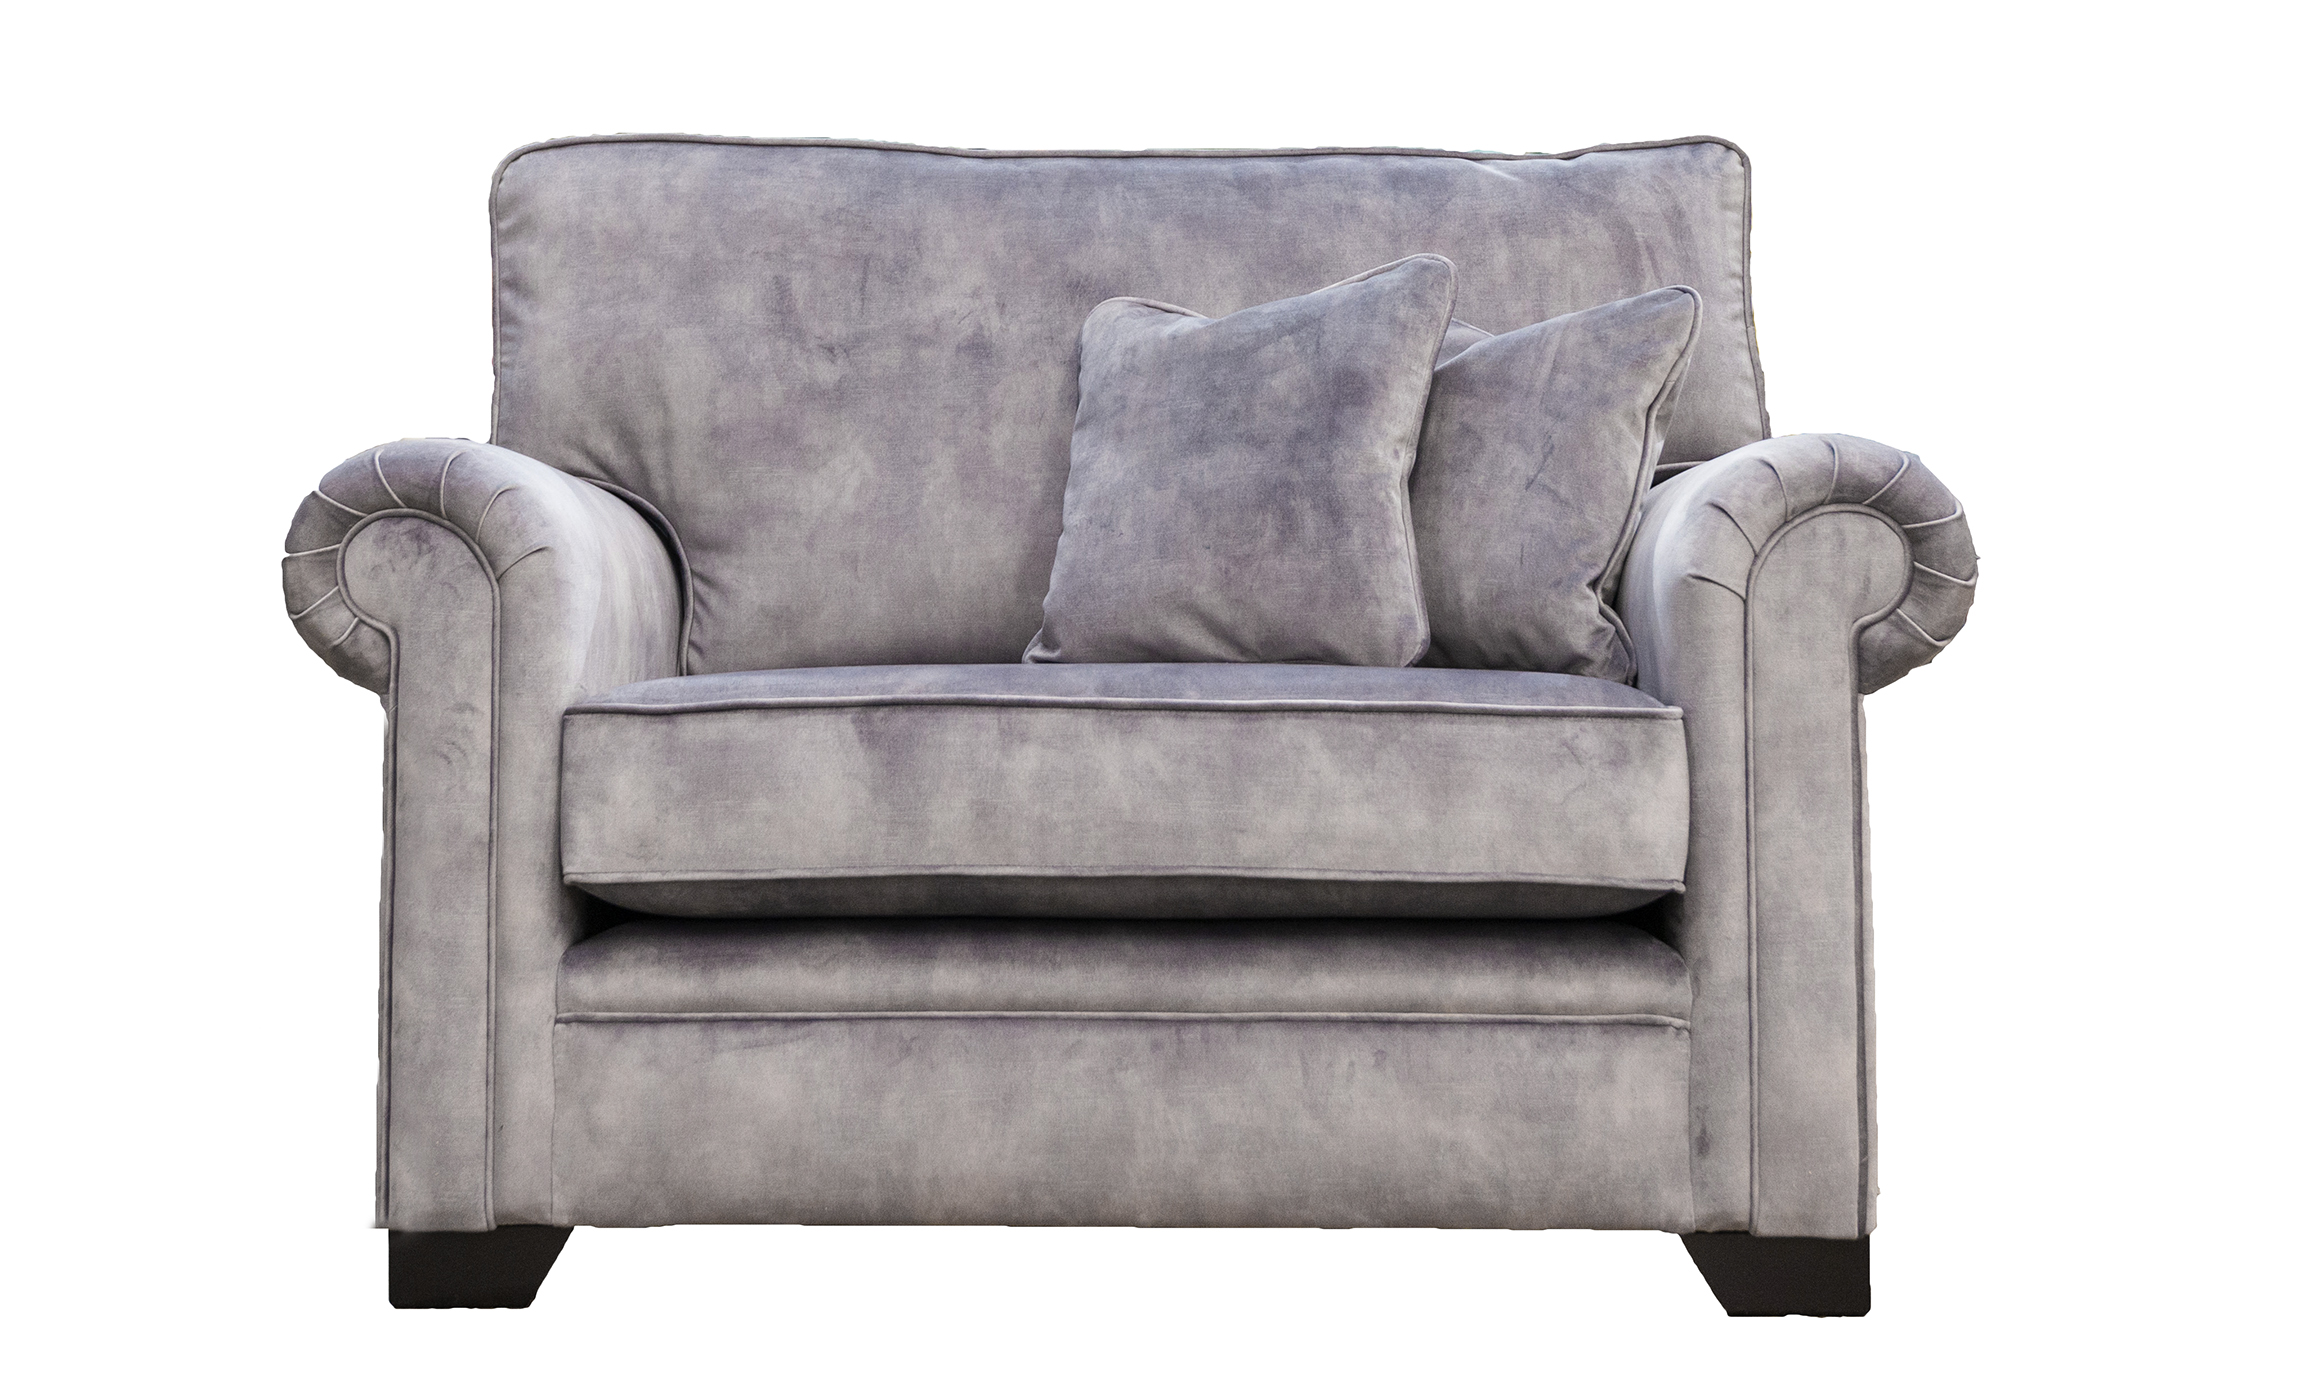 Imperial Love Seat in Lovely Armour, Gold Collection Fabric